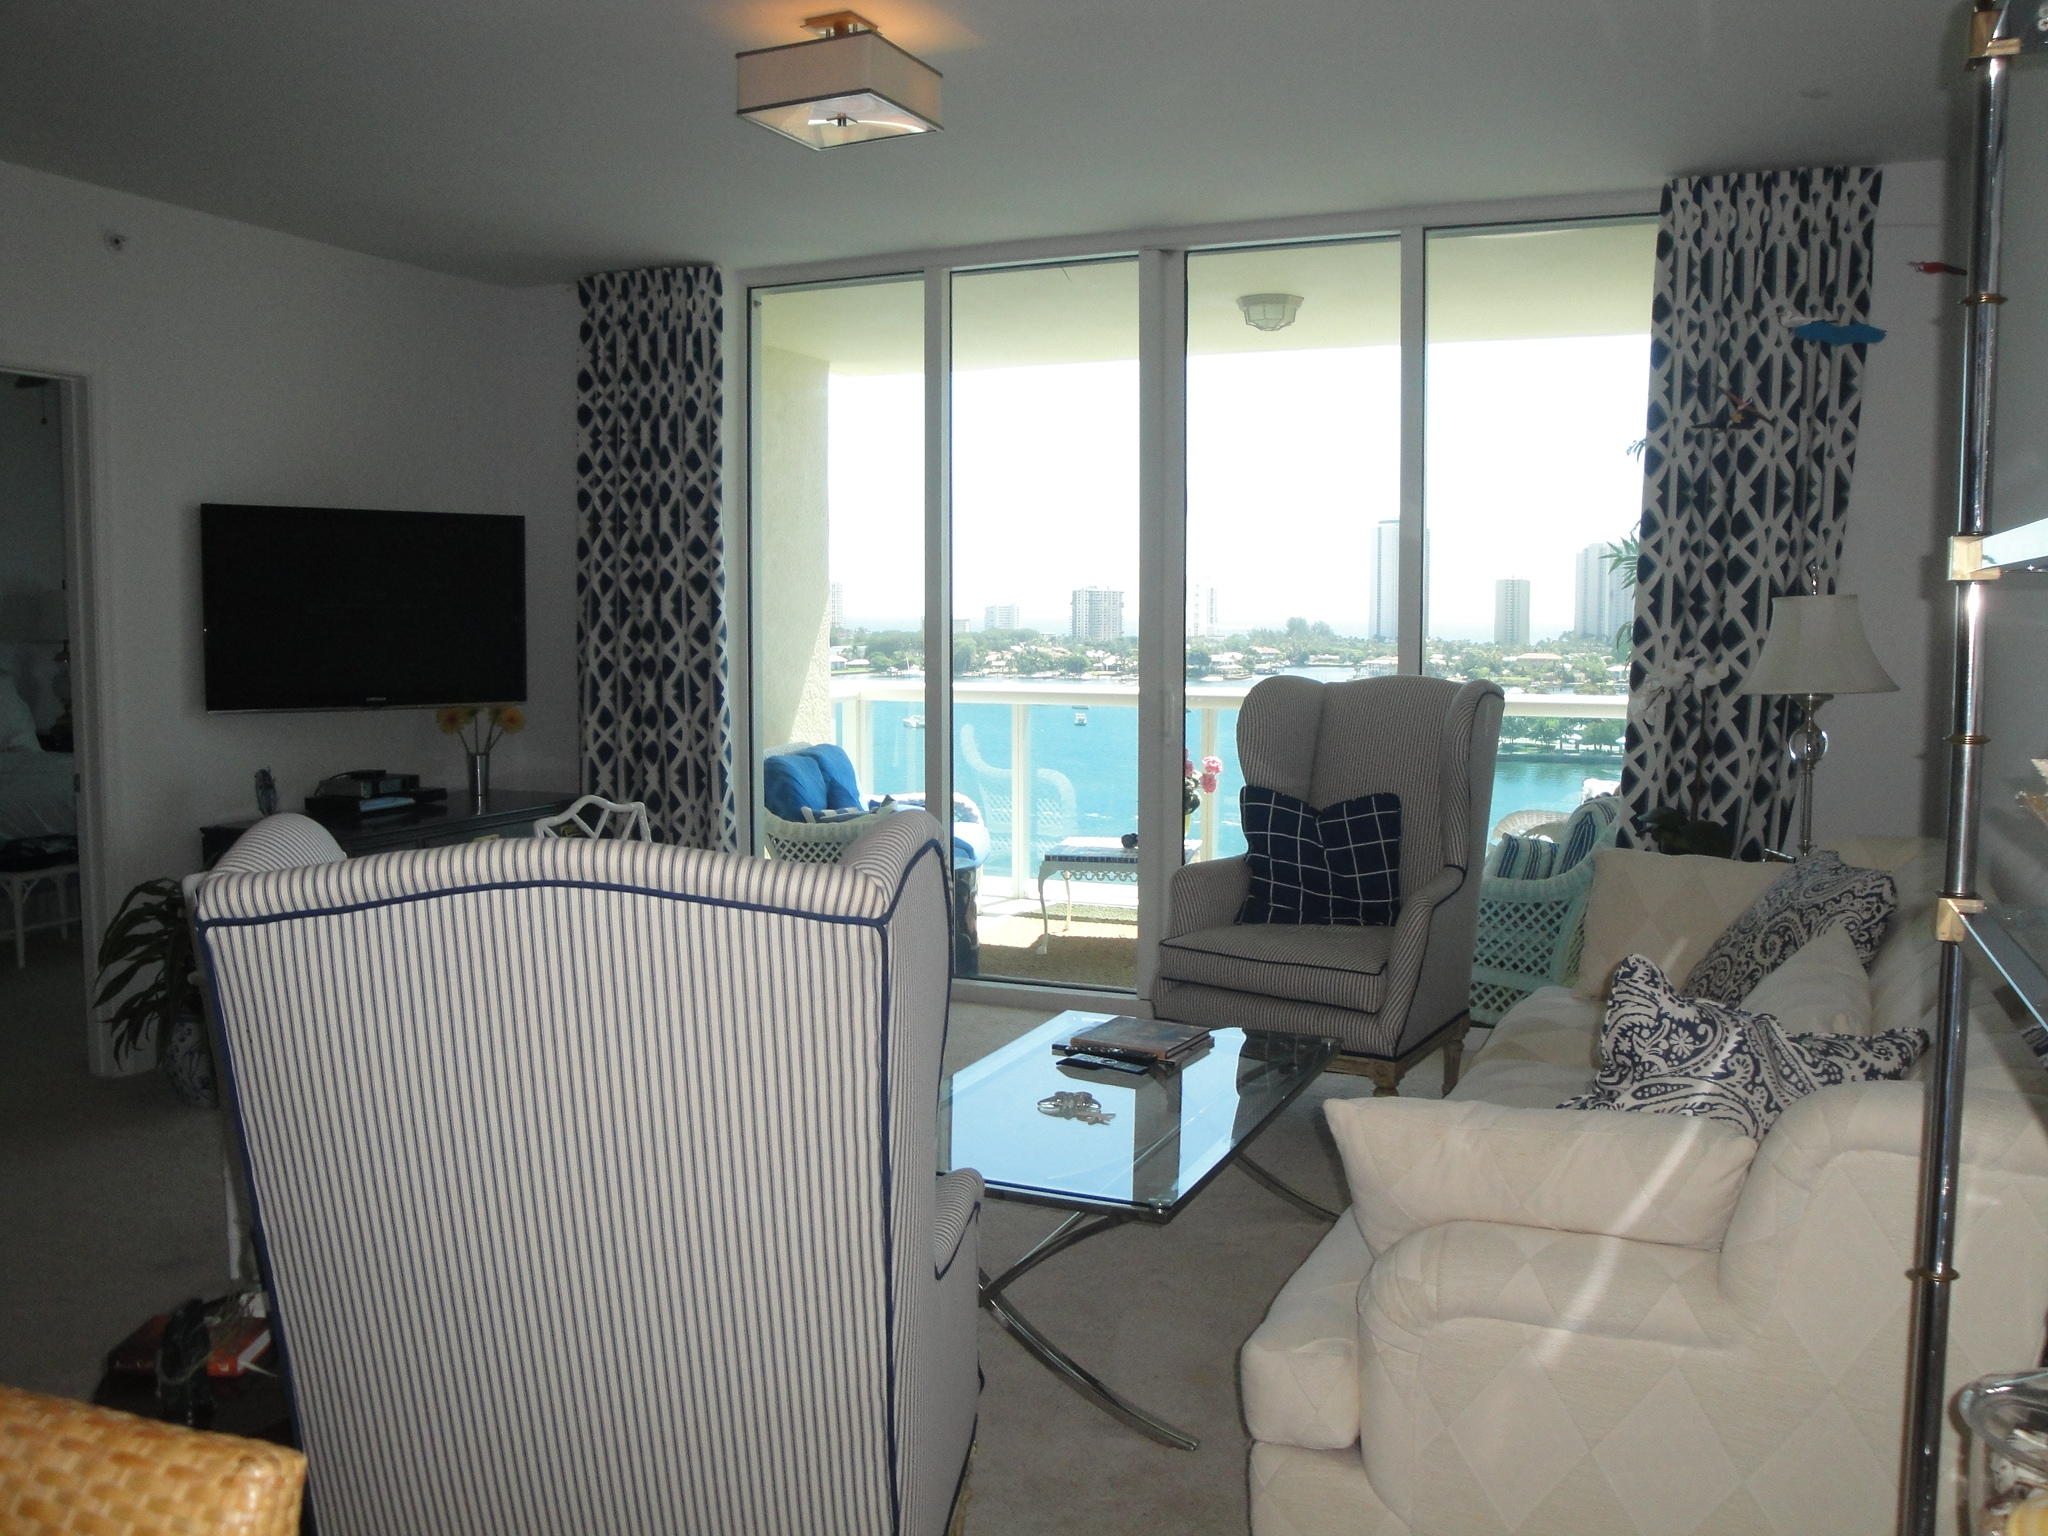 2640 Lake Shore Drive 1209, Riviera Beach, Florida 33404, 2 Bedrooms Bedrooms, ,2 BathroomsBathrooms,A,Condominium,Lake Shore,RX-10500780